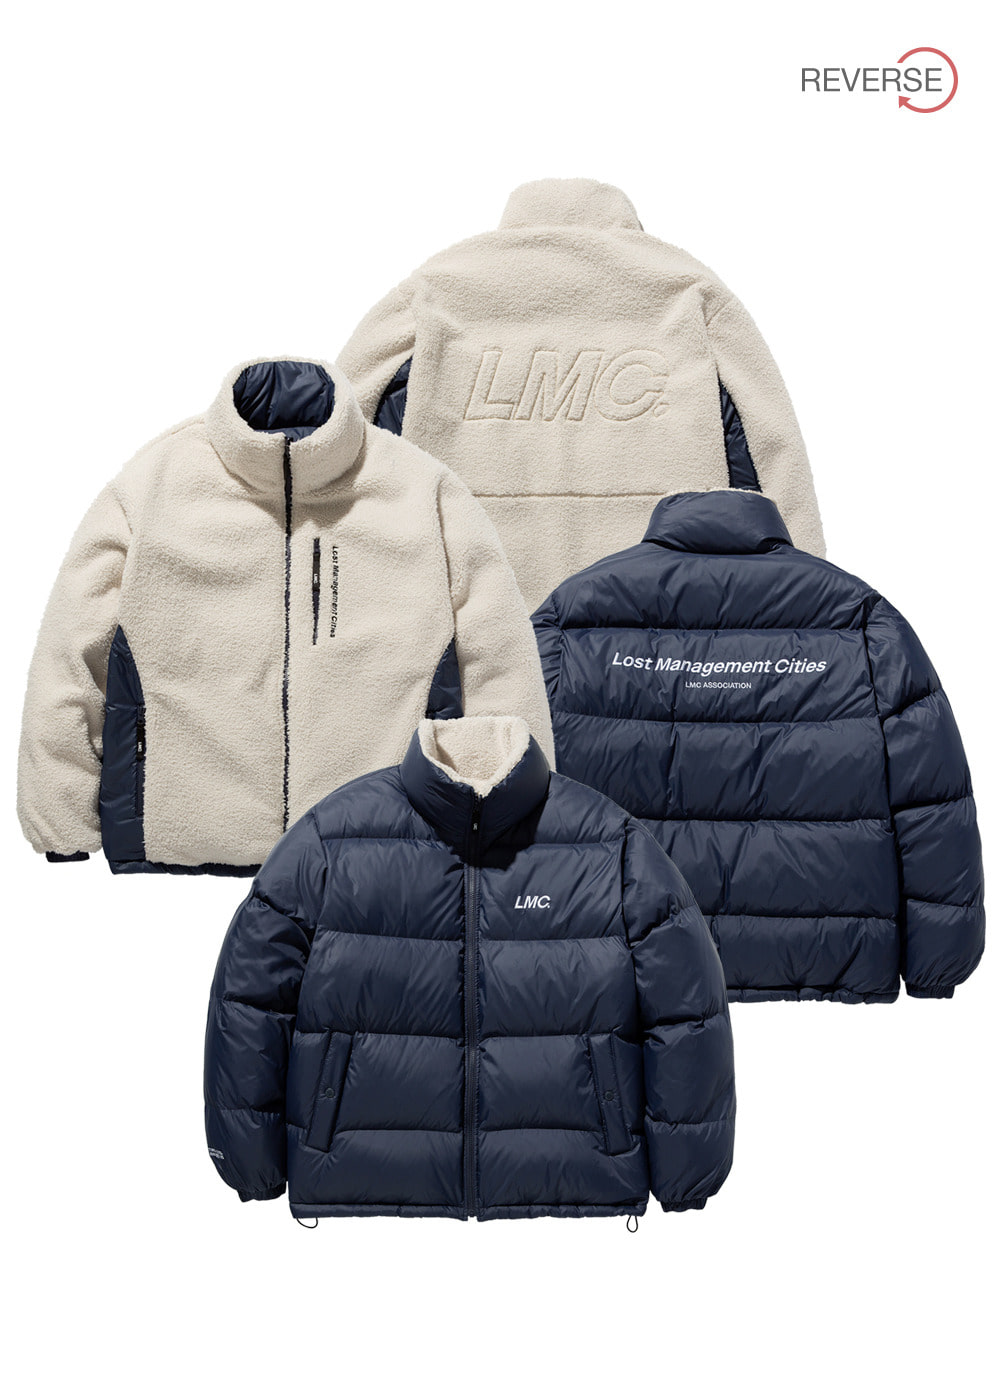 LMC BOA FLEECE REVERSIBLE DOWN PARKA nv/be